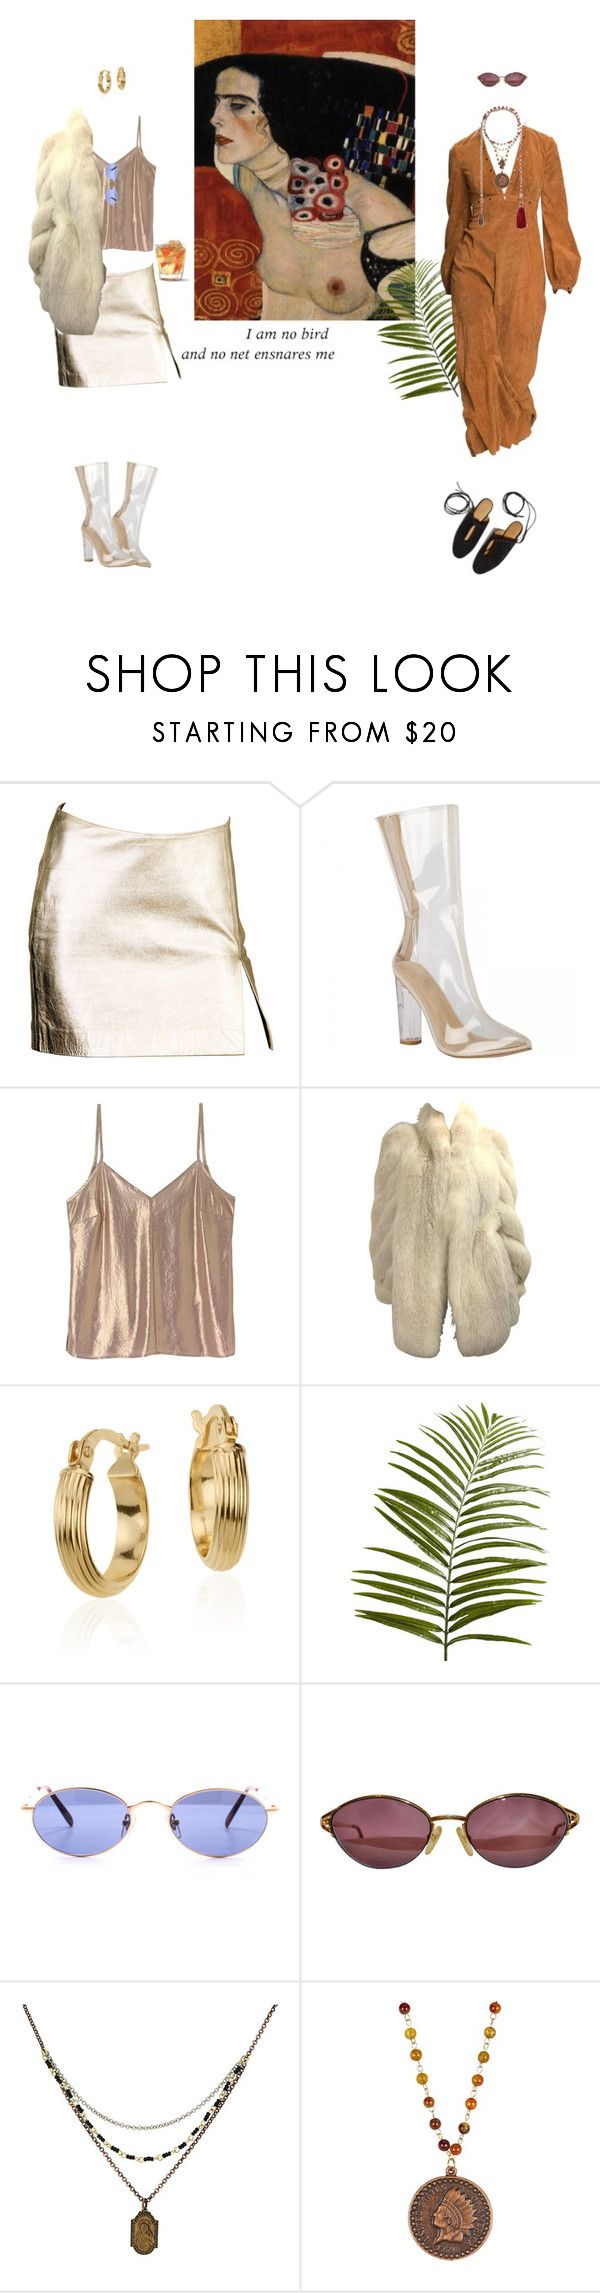 """Judith II—two sides of Judith."" by ballrooms-of-mars ❤ liked on Polyvore featuring Versace, Blue Nile, Pier 1 Imports, Rosetta Getty, Gucci, Christian Dior and 1928"